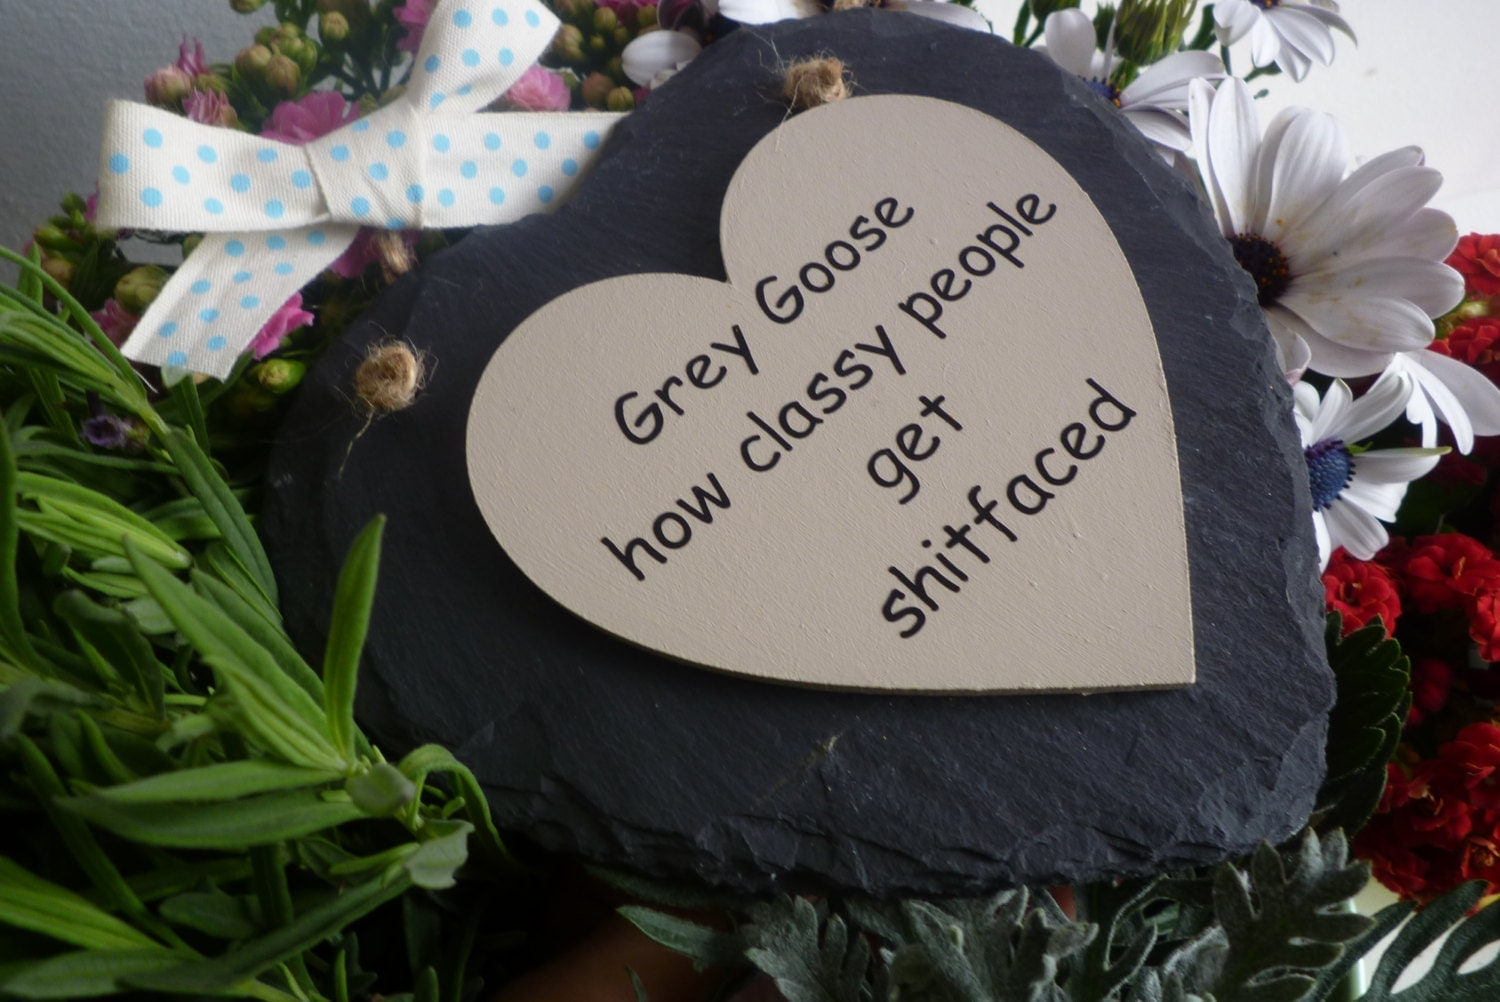 Grey Goose vodka how classy people get shitfaced handmade slate wooden sign plaque quote stocking filler friend gift xmas secret santa drink